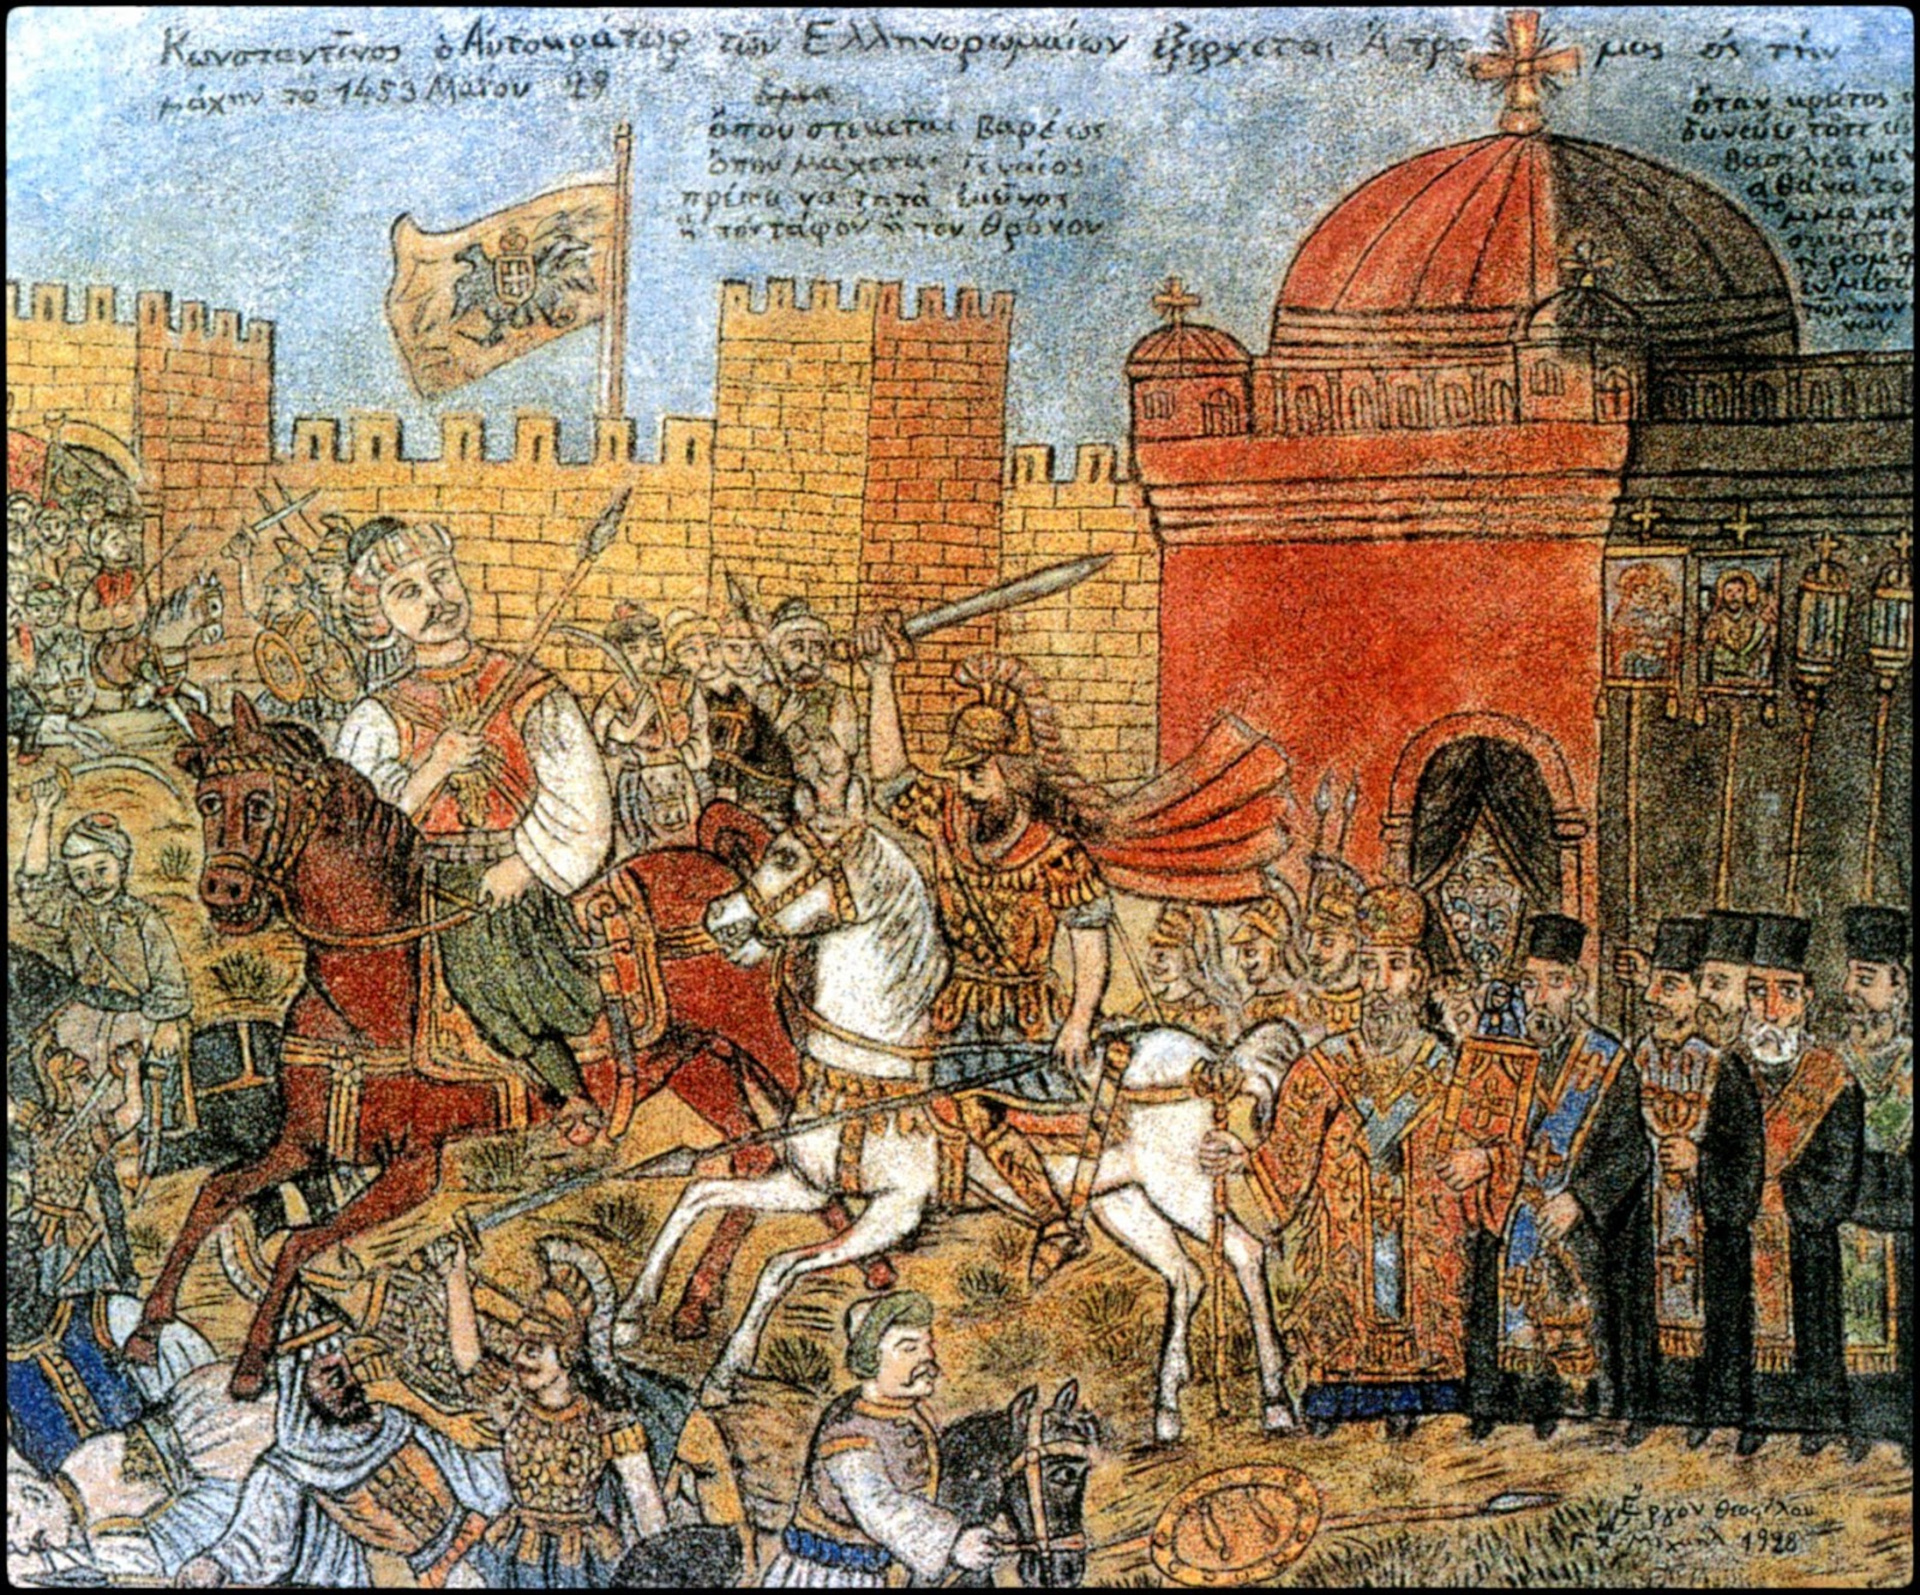 Constantinople, the capital of the Byzantine Empire, was the final part of the empire to fall to the Ottoman Turks due to its strong defences. Fall-of-constantinople-22.jpg